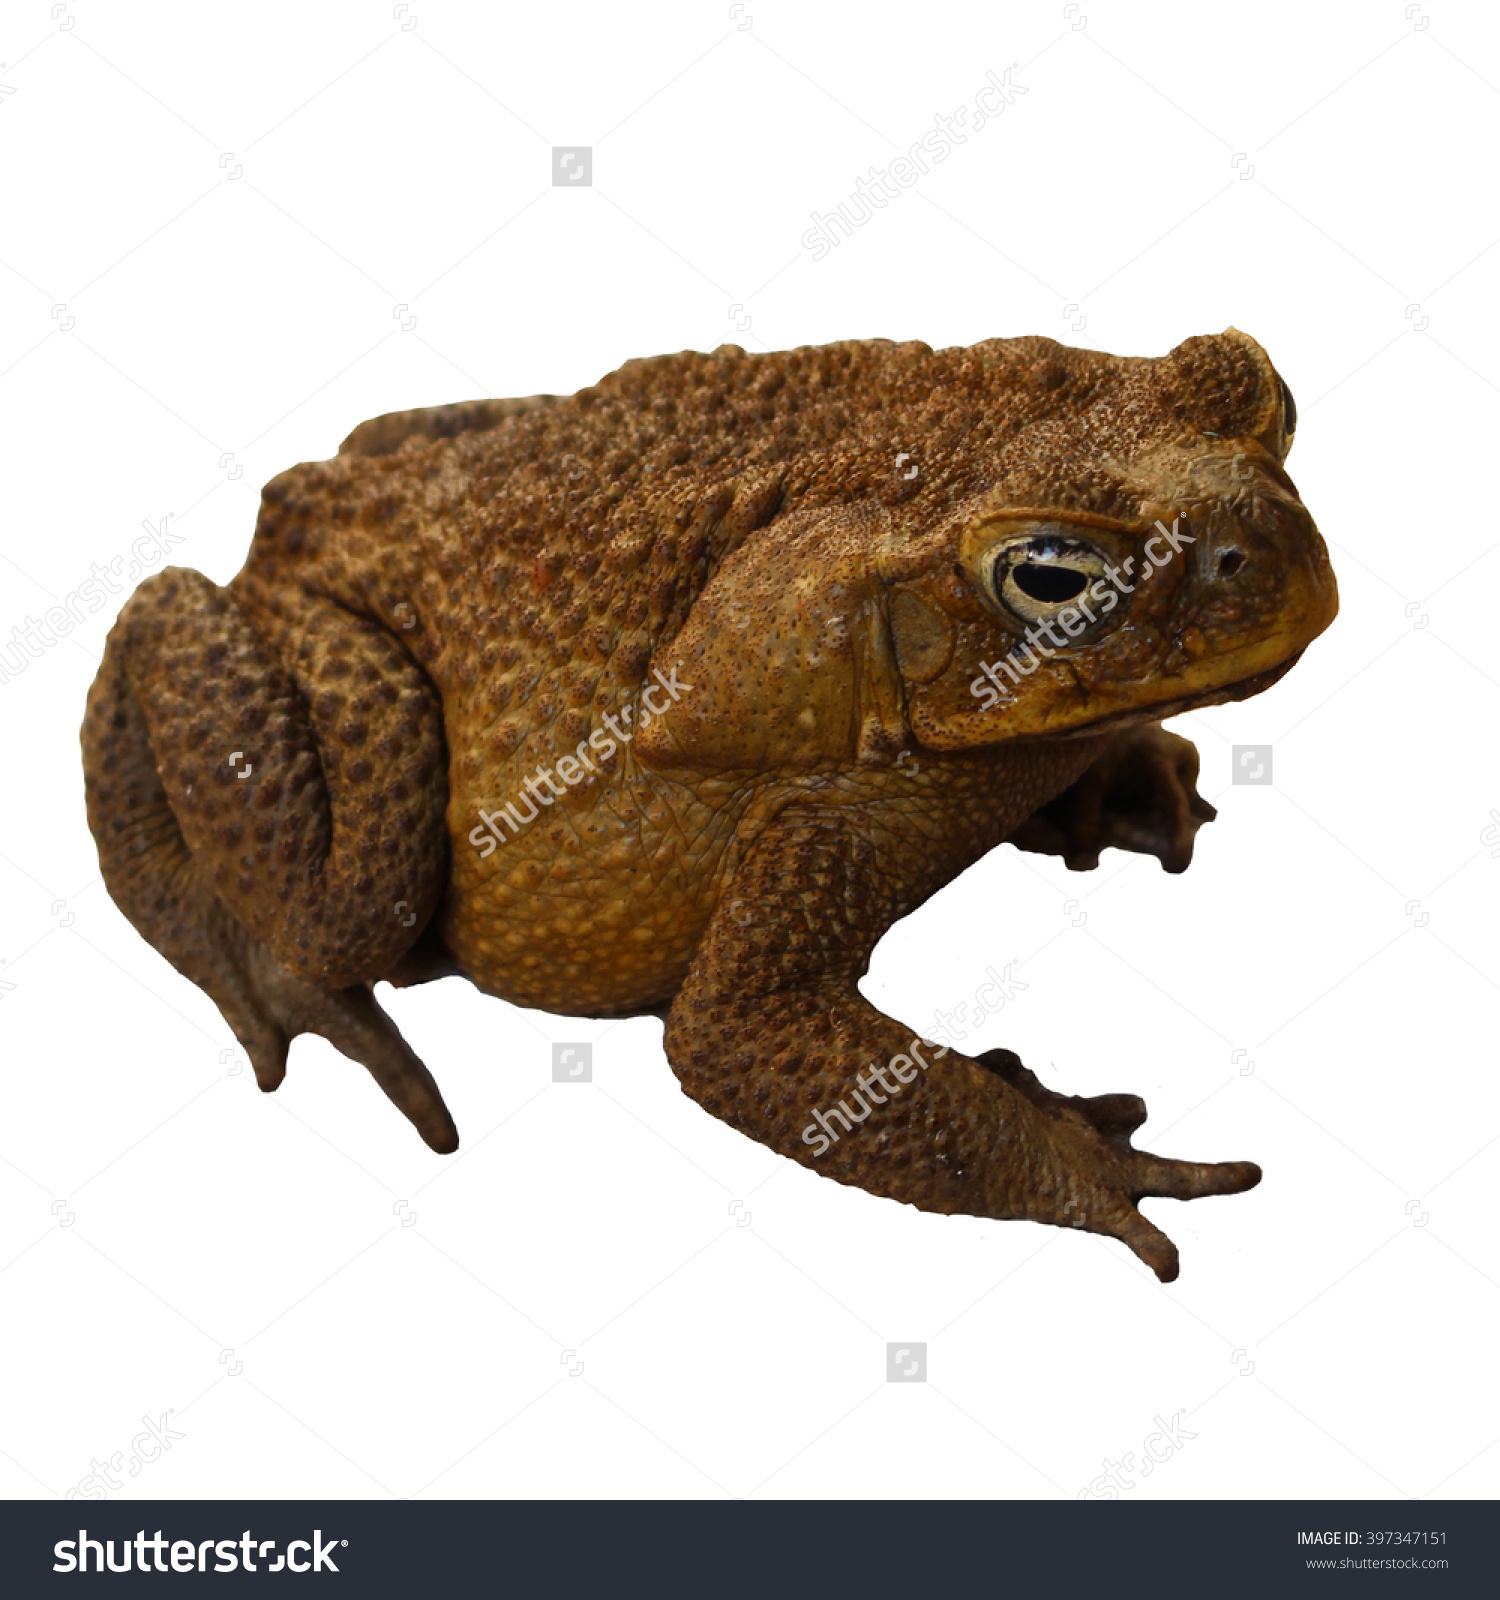 American Toad clipart #2, Download drawings